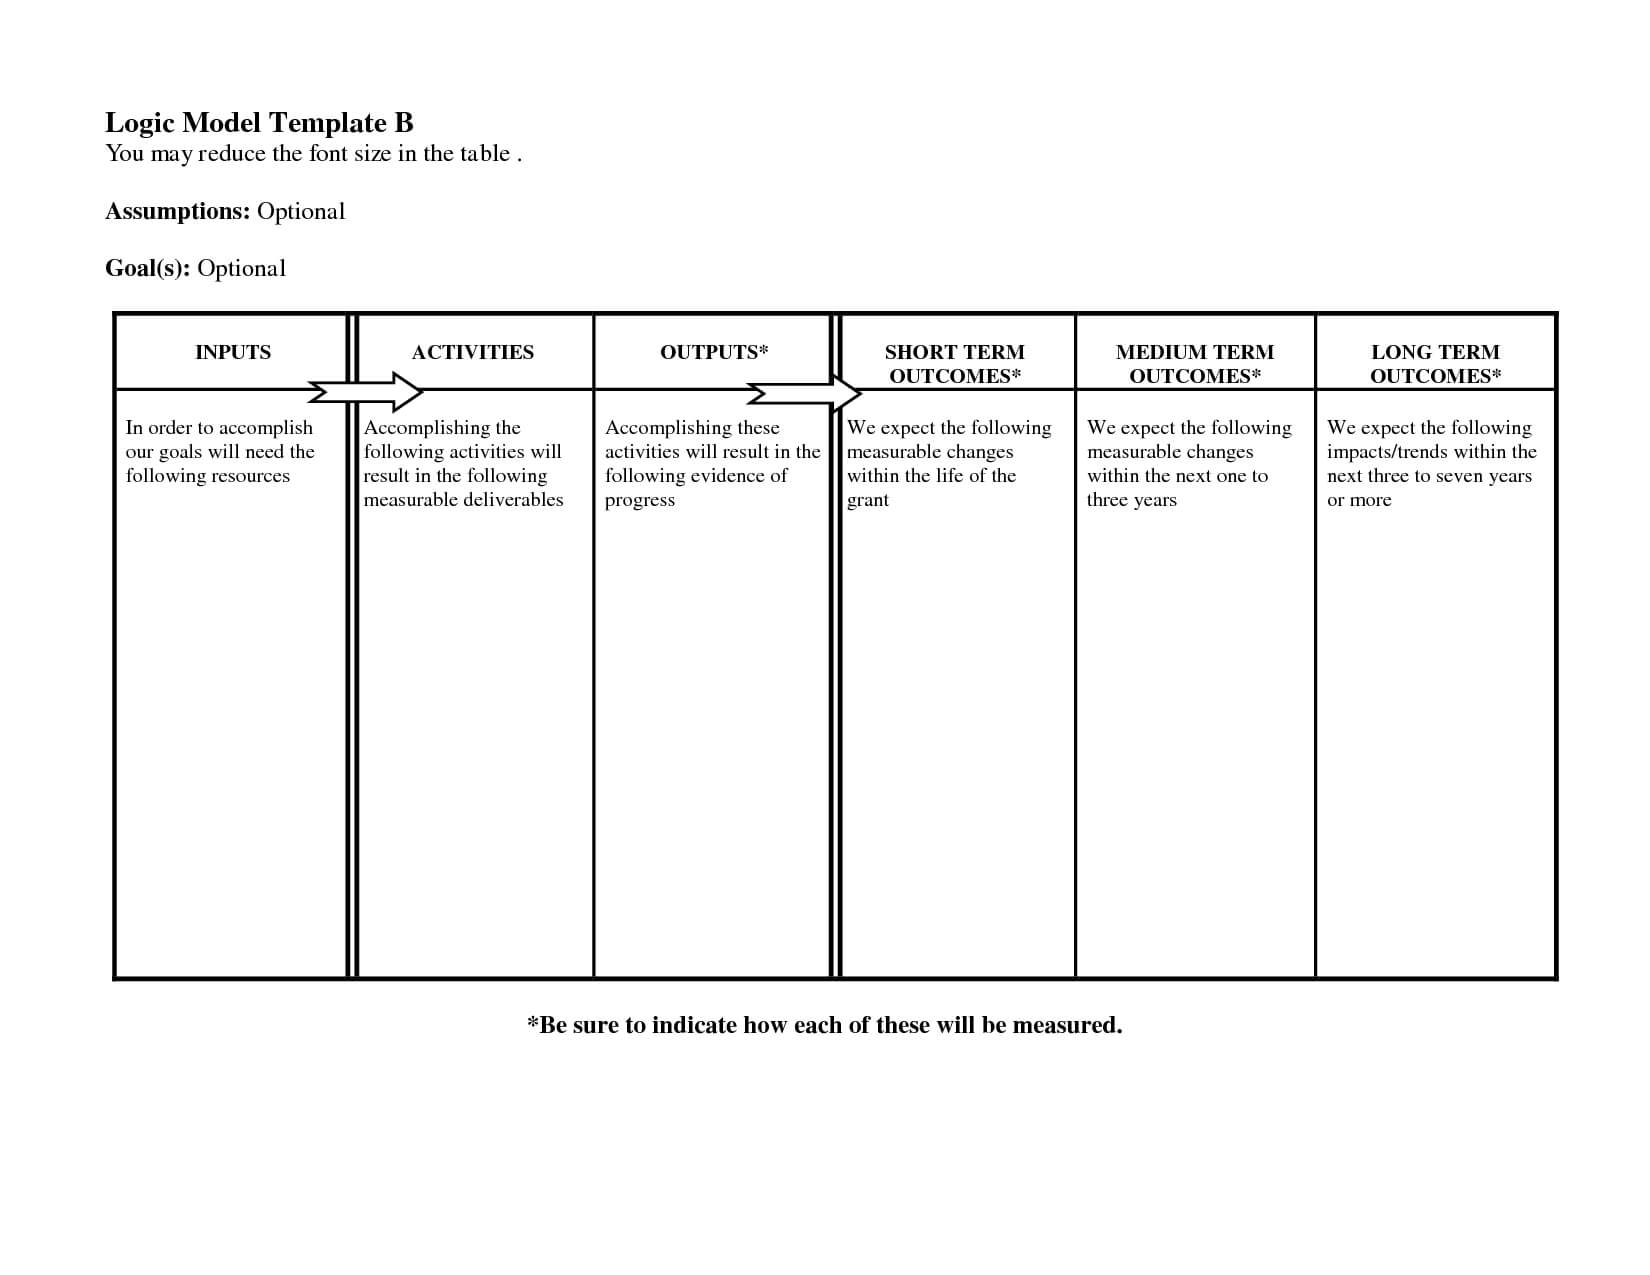 Free Logic Templates Download ] - Of Social Media Marketing Intended For Logic Model Template Microsoft Word